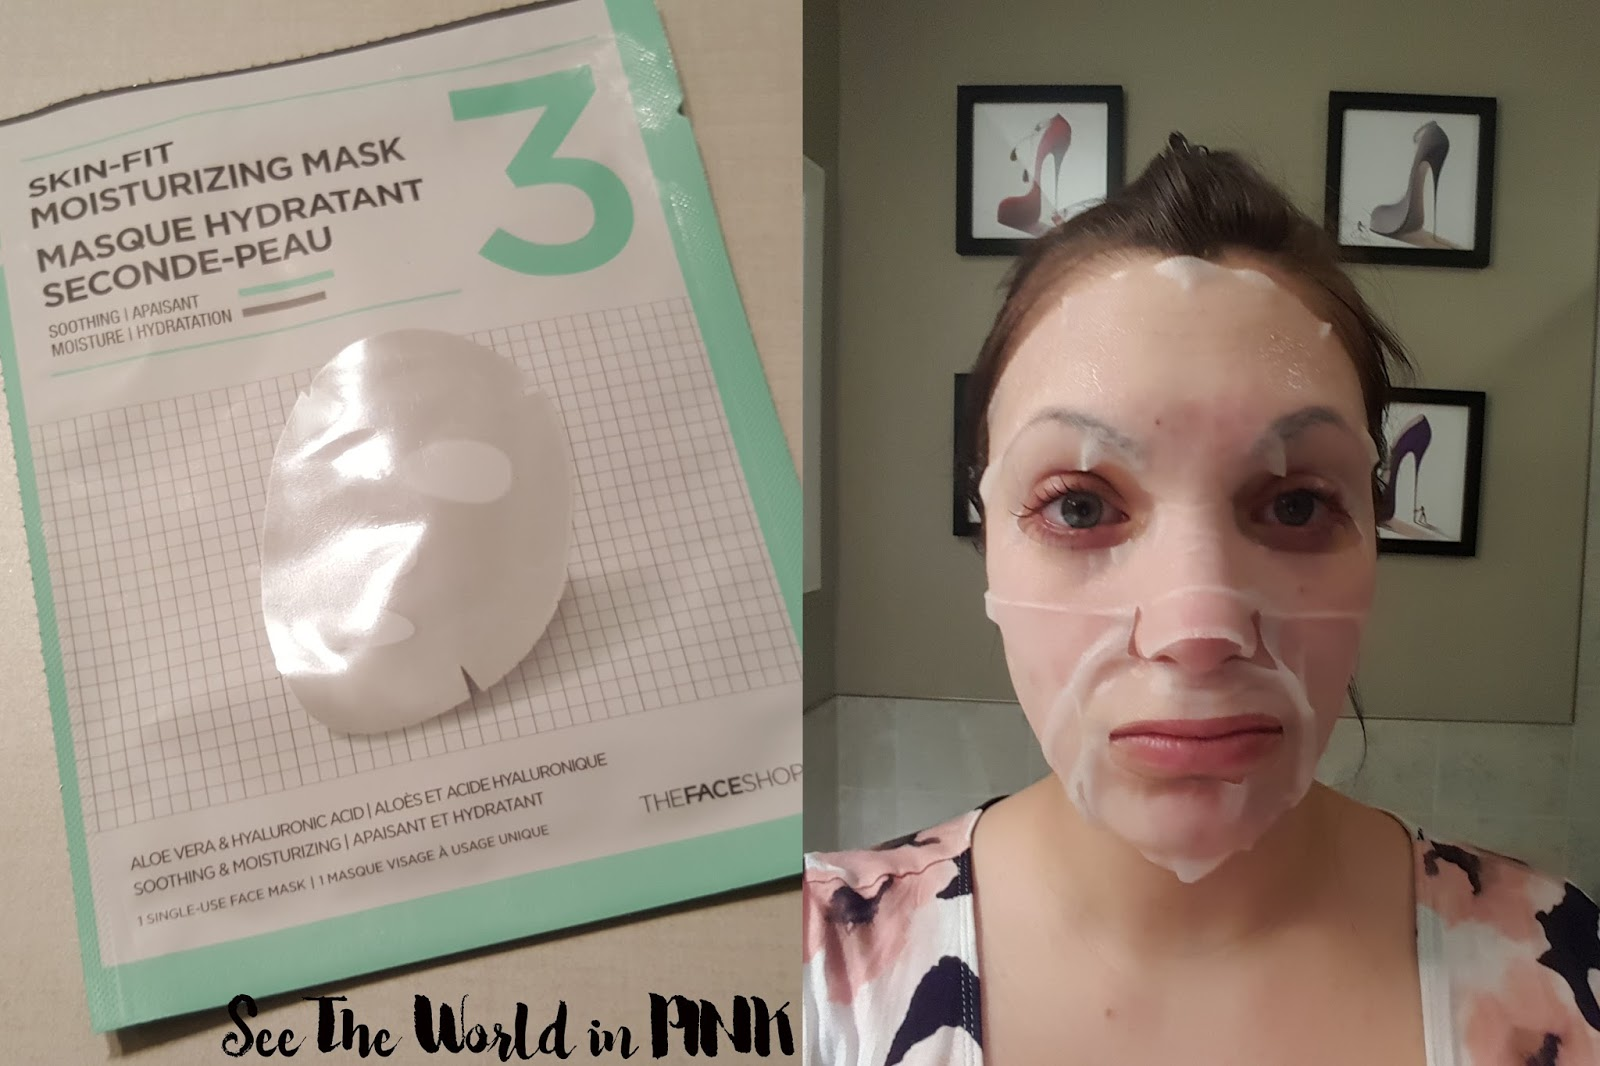 THEFACESHOP New 3-step Programming Kit Mask